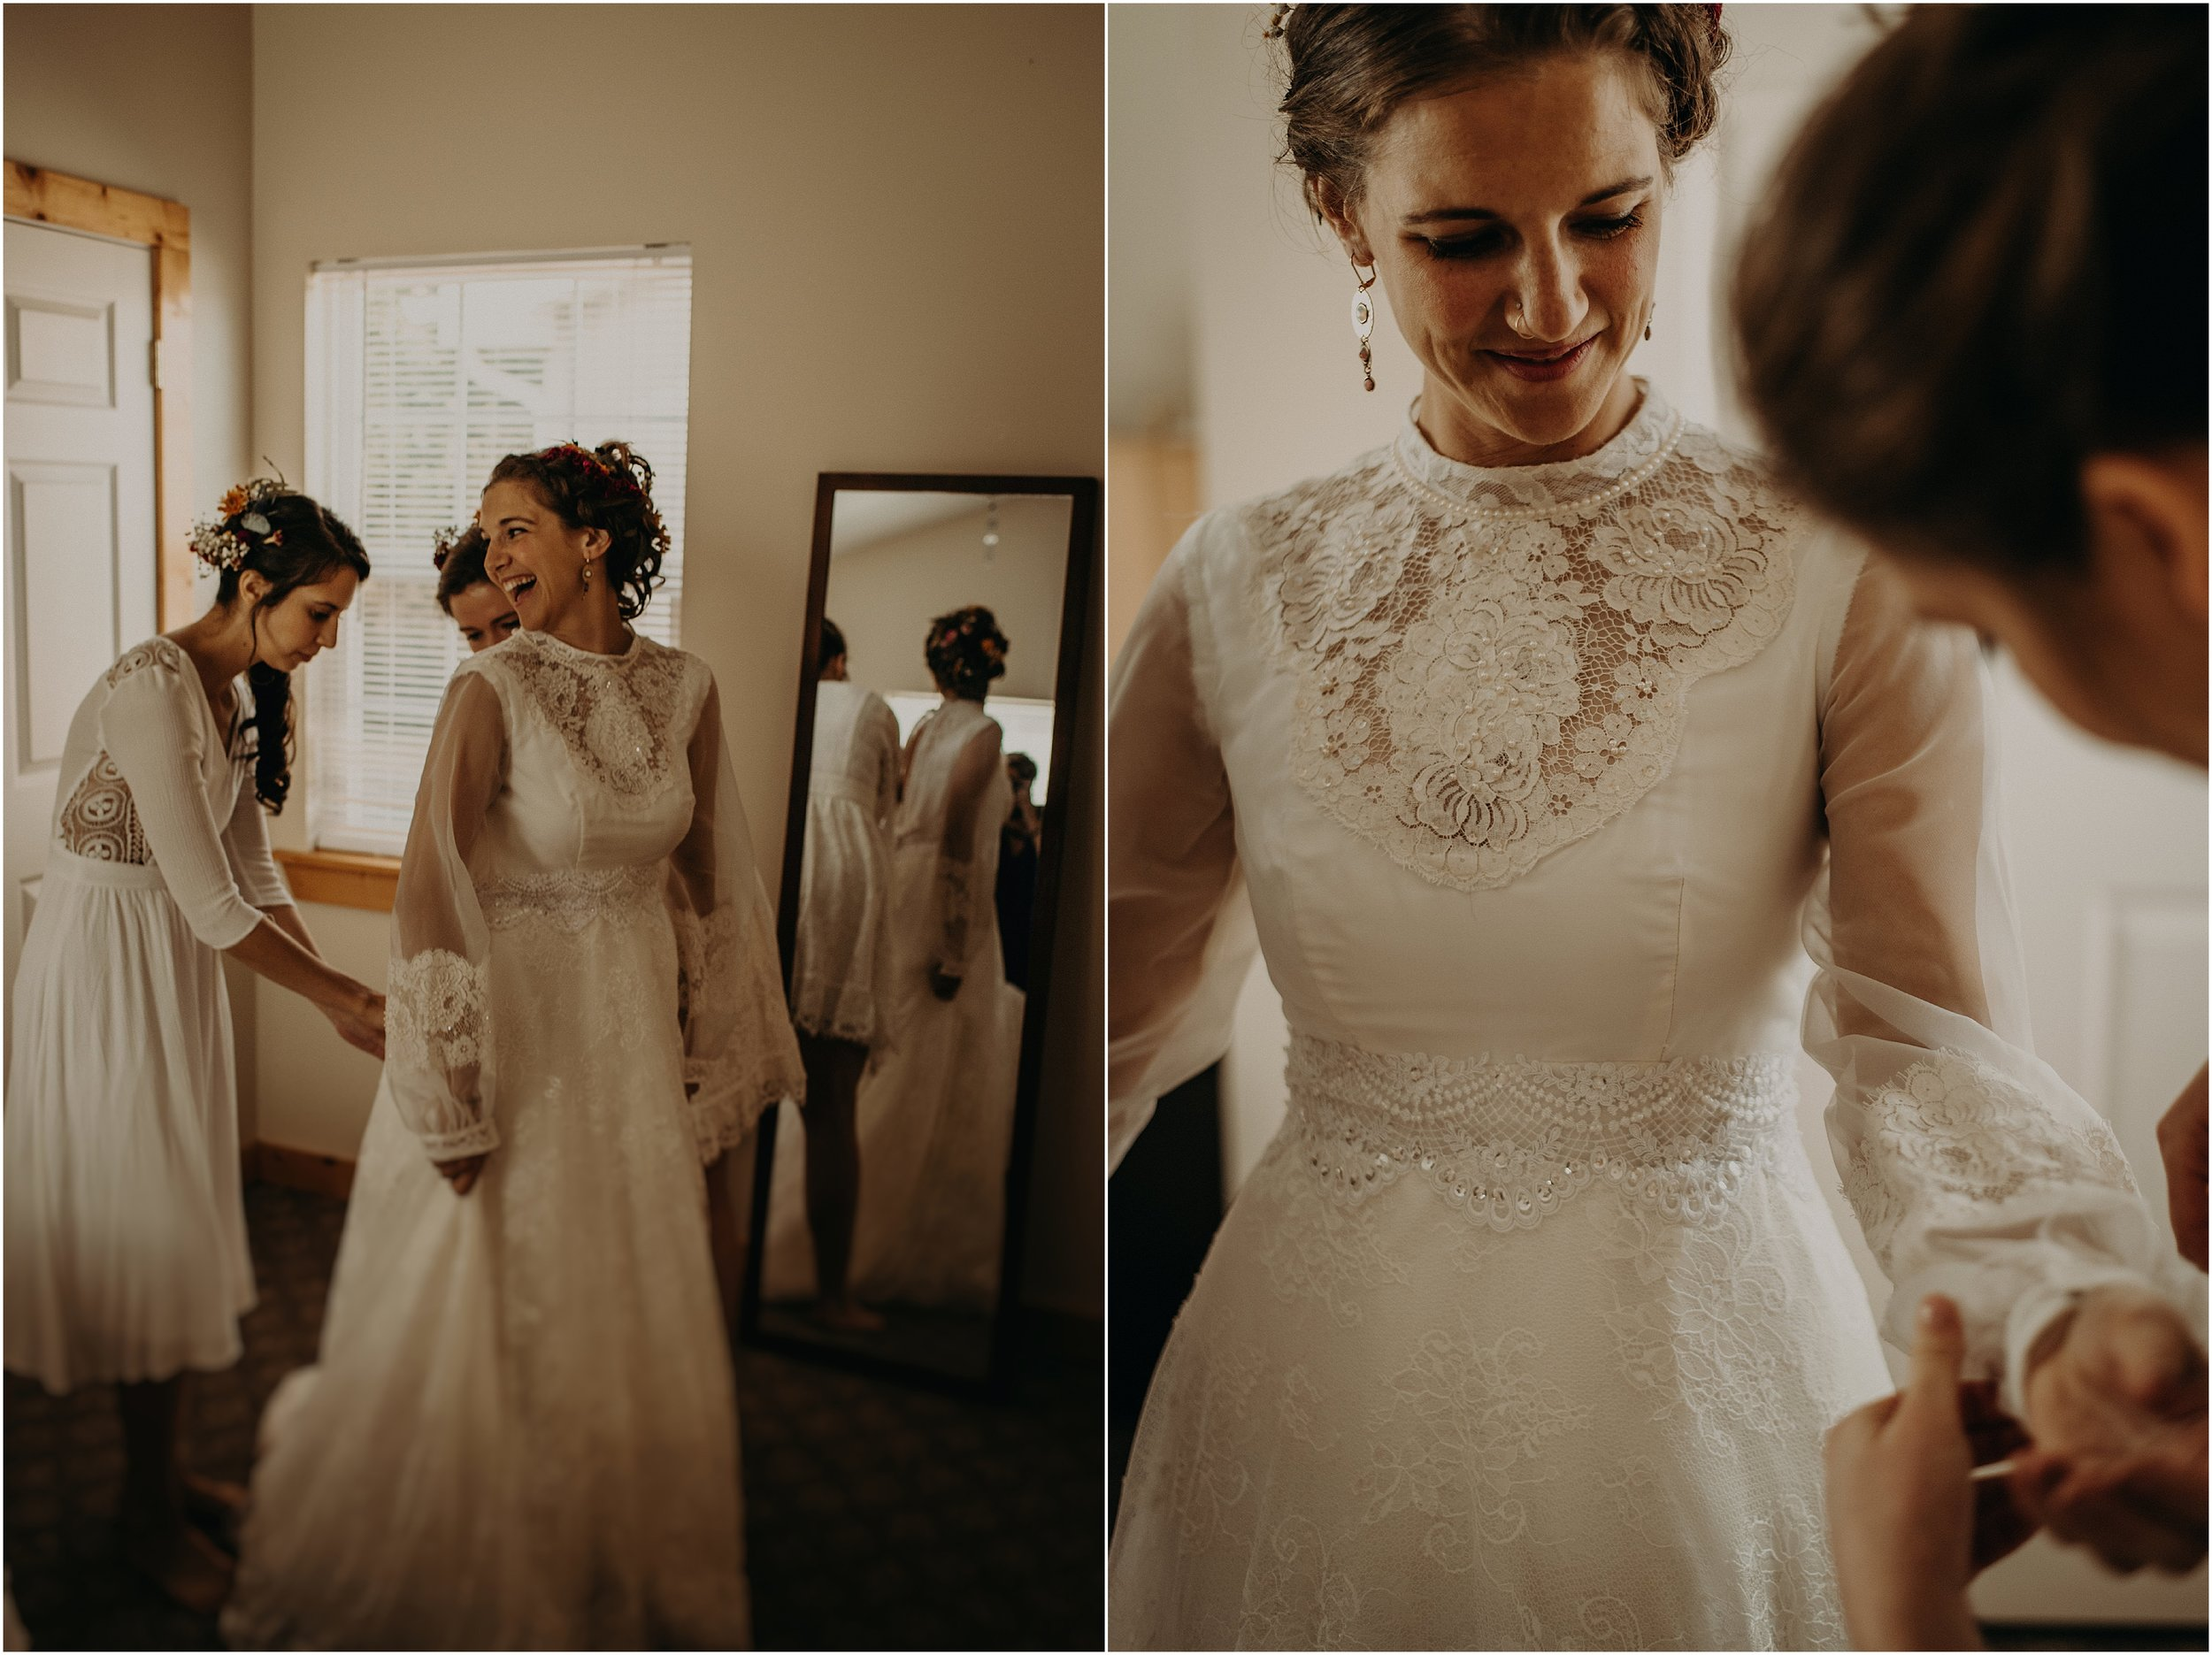 Fastening the bride's buttons on her dress